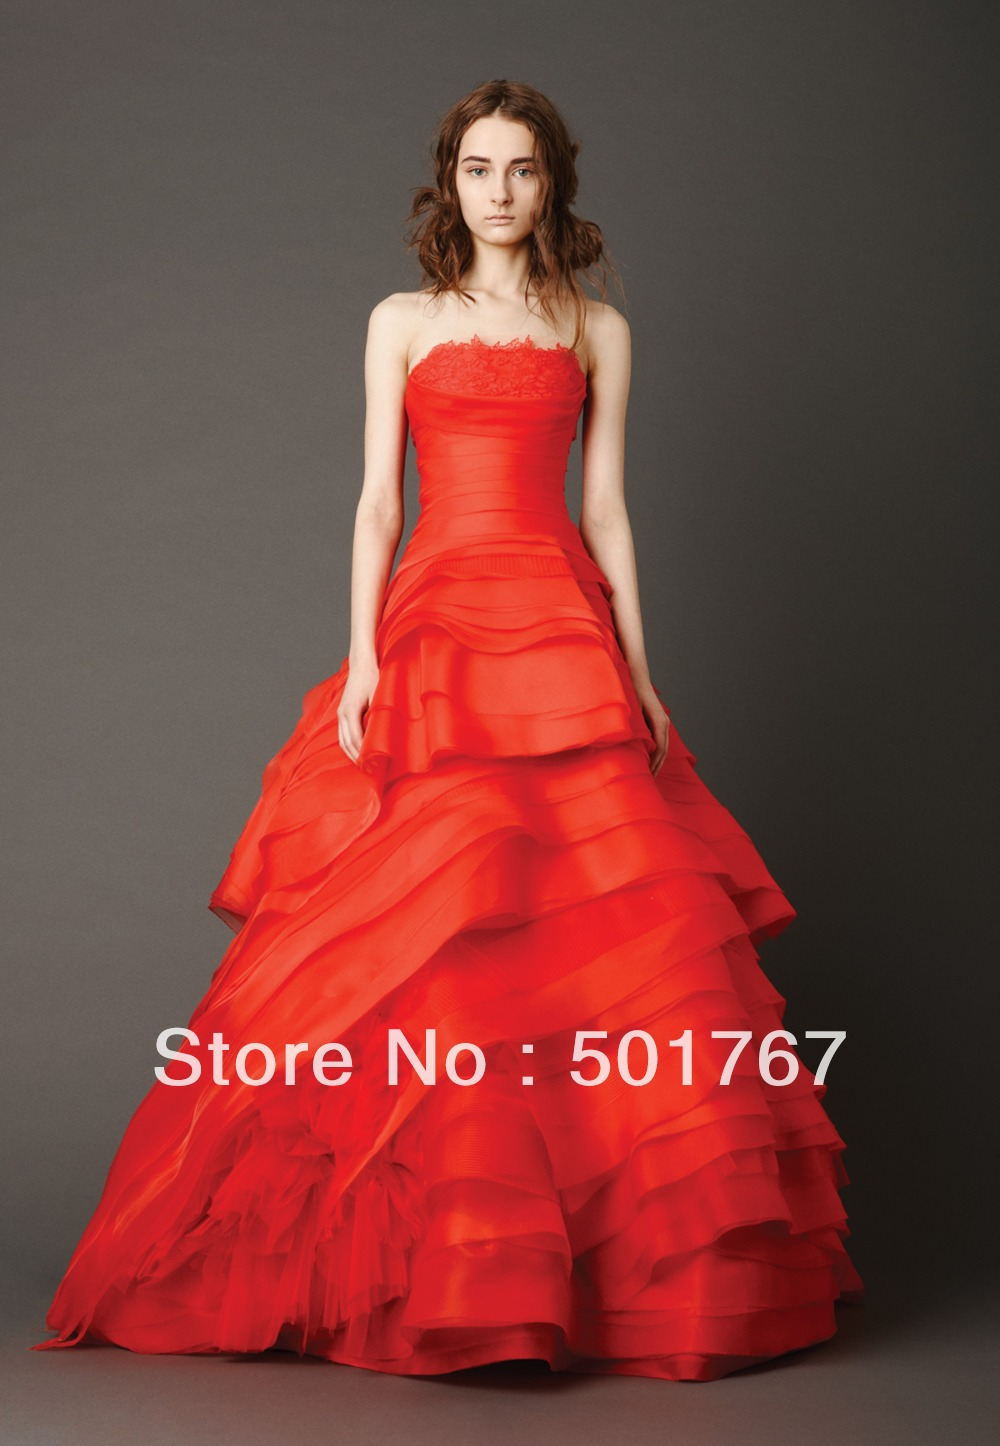 Red And White Wedding Dress Buy : Aliexpress buy new model wedding dress red and